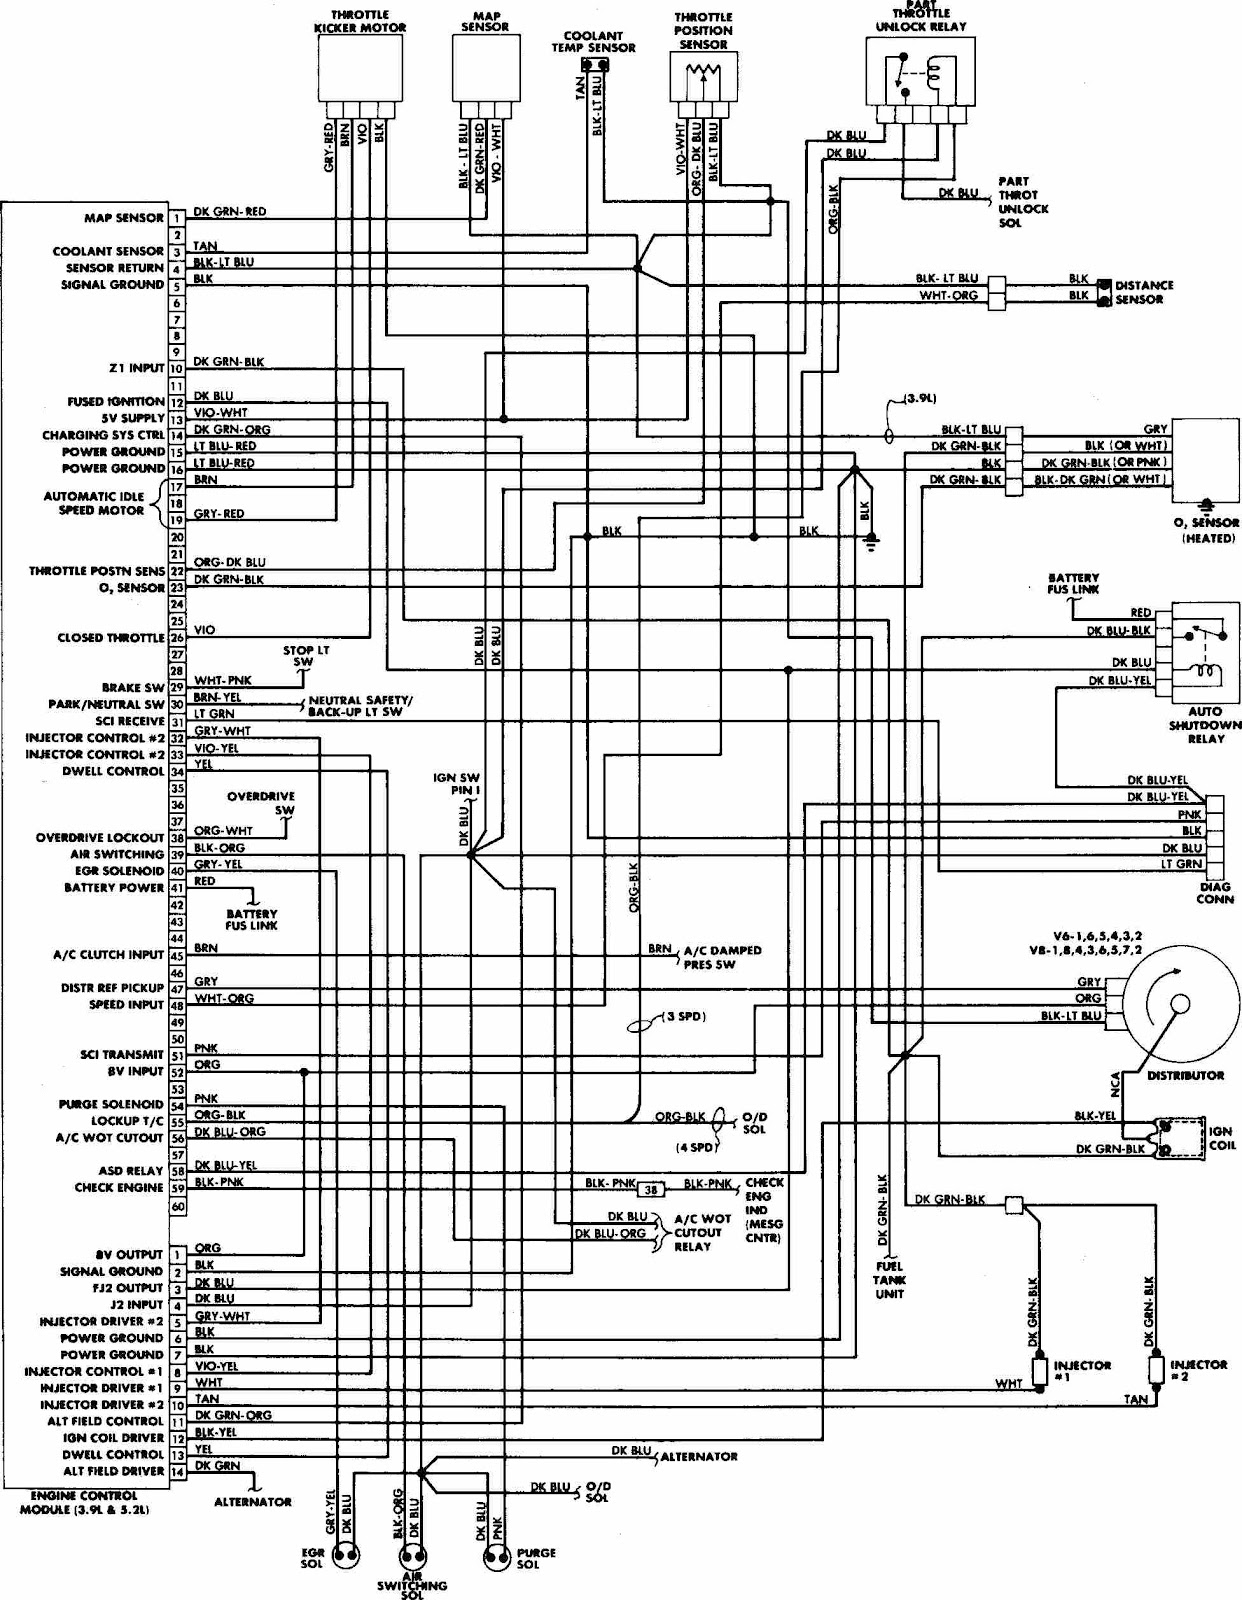 dodge w100 1988 engine control wiring diagram all about wiring diagrams  2011 GMC Sierra Wiring Diagram 1994 gmc sierra 1500 radio wiring diagram